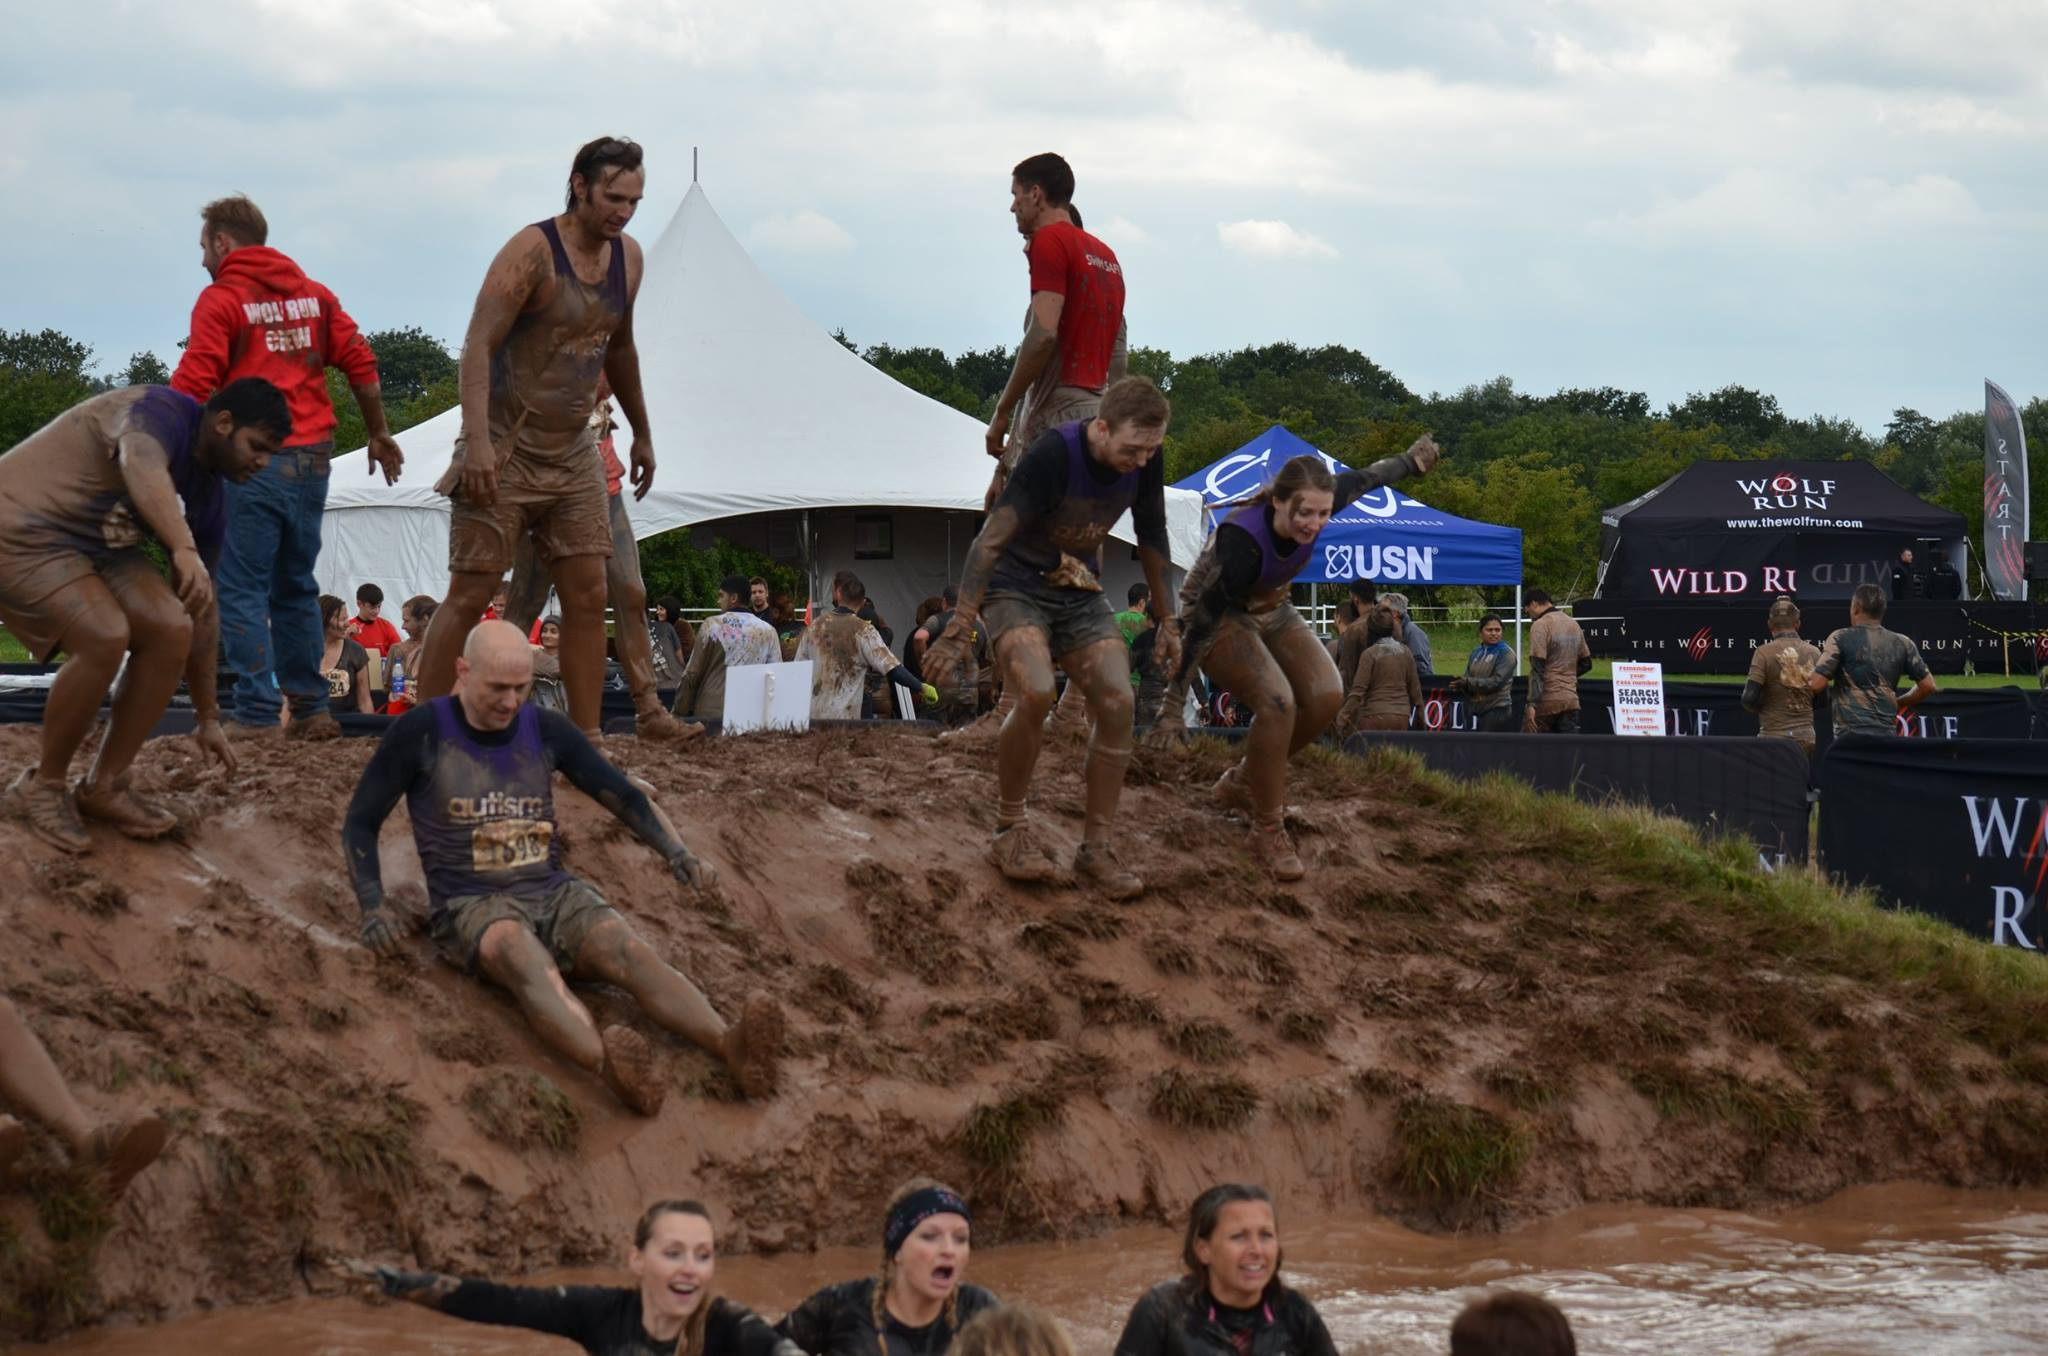 Supporting Autism West Midlands at the Wolf run